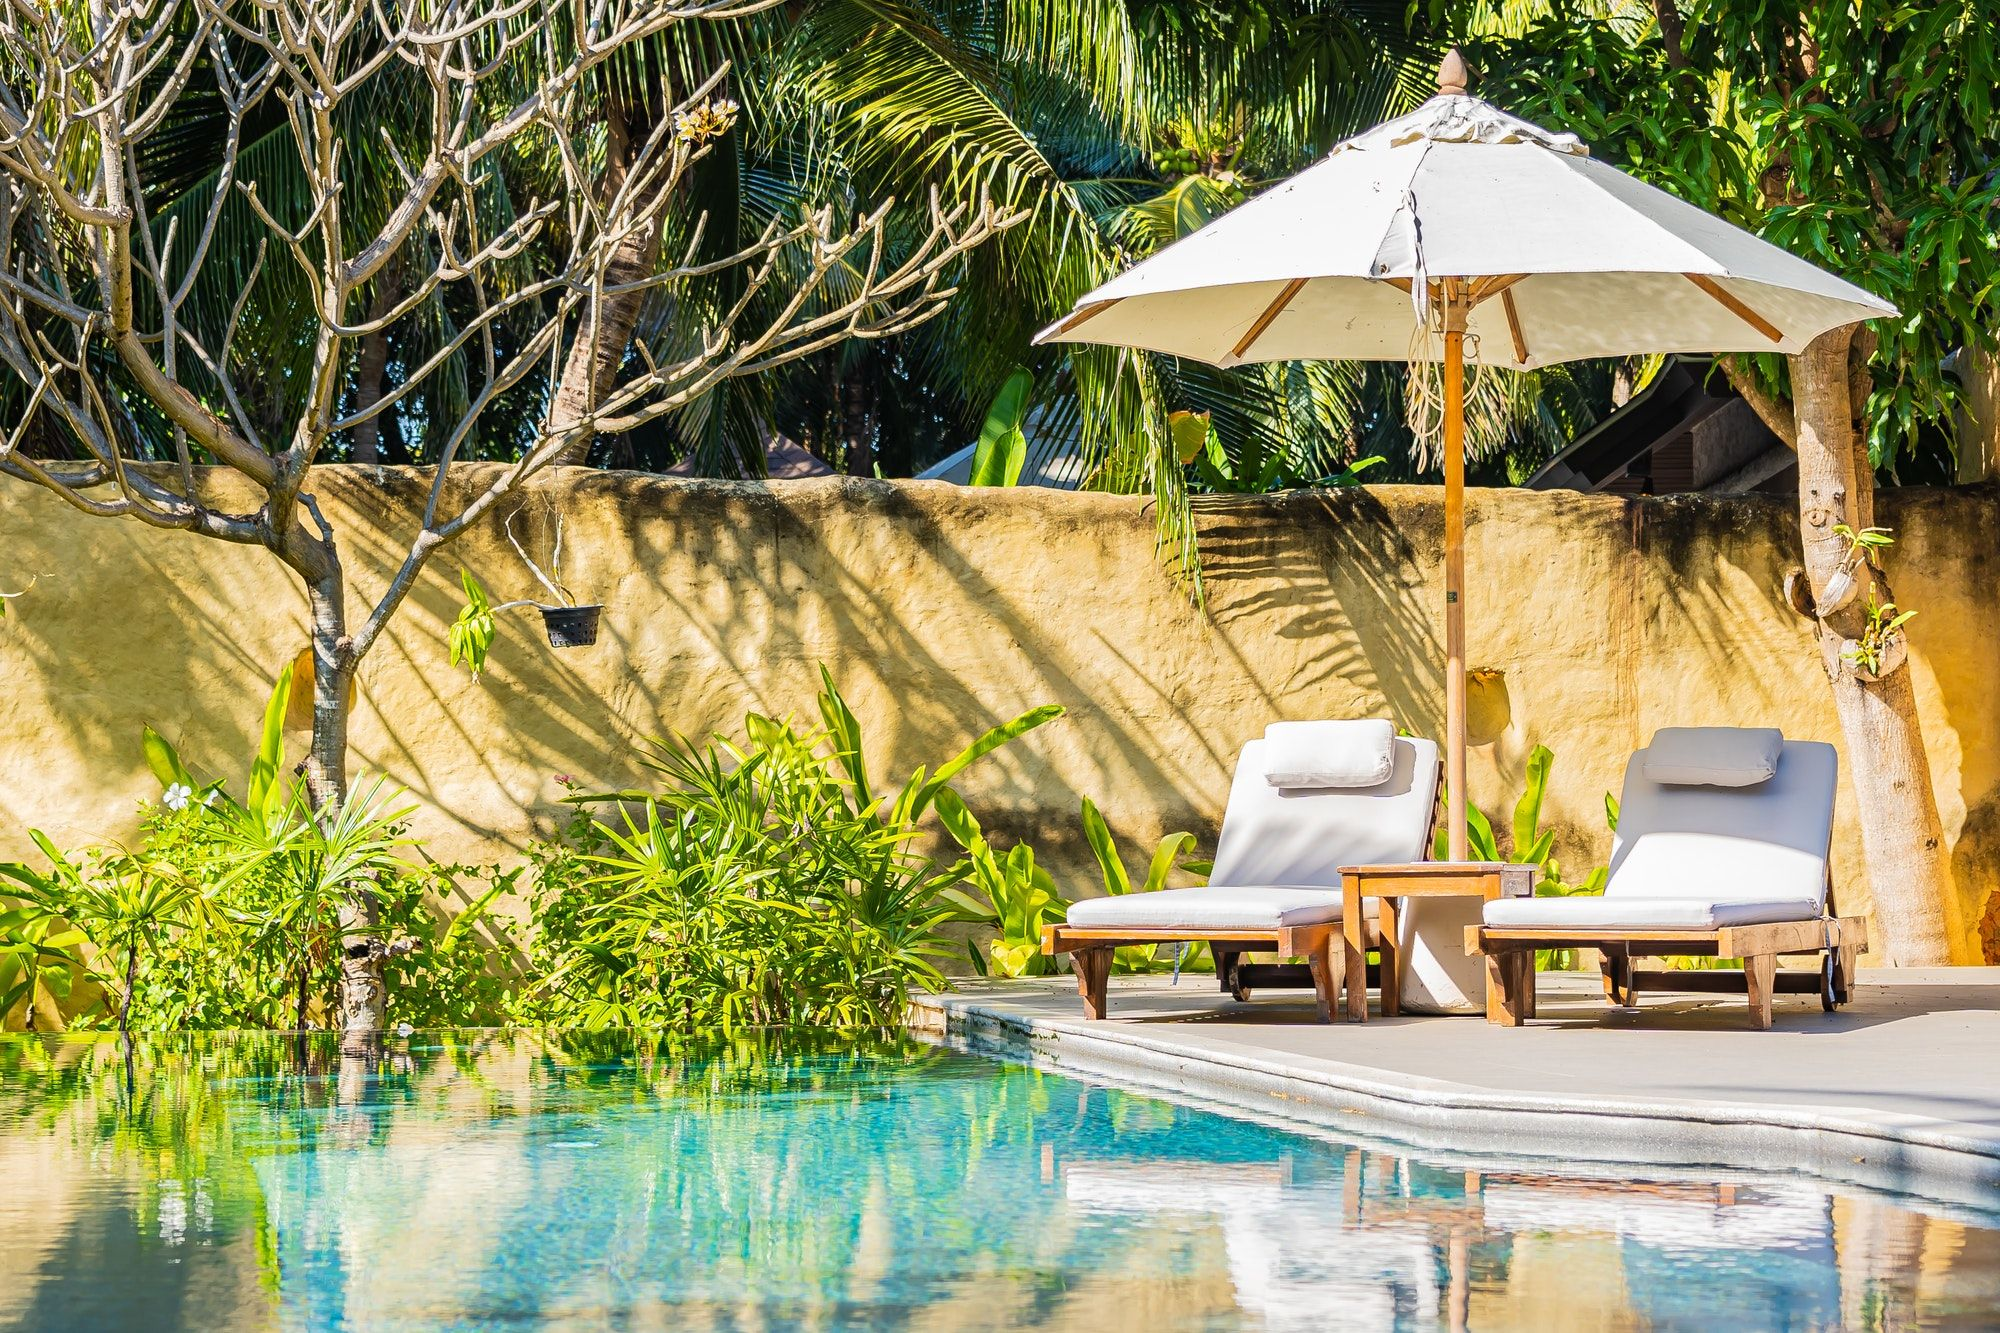 umbrella-and-chair-around-outdoor-swimming-pool.jpg